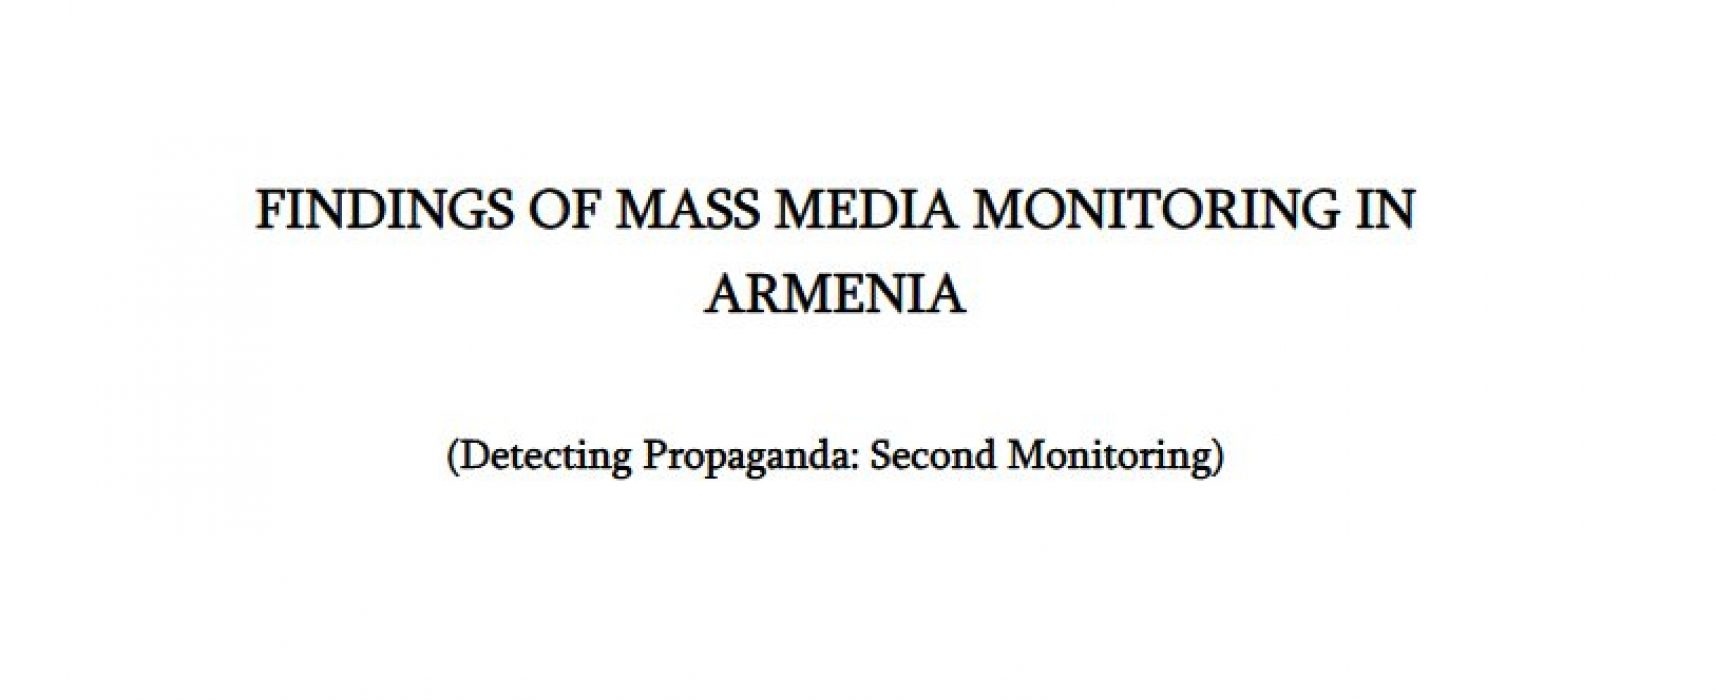 Findings of mass media monitoring in Armenia: Detecting propaganda (second monitoring)